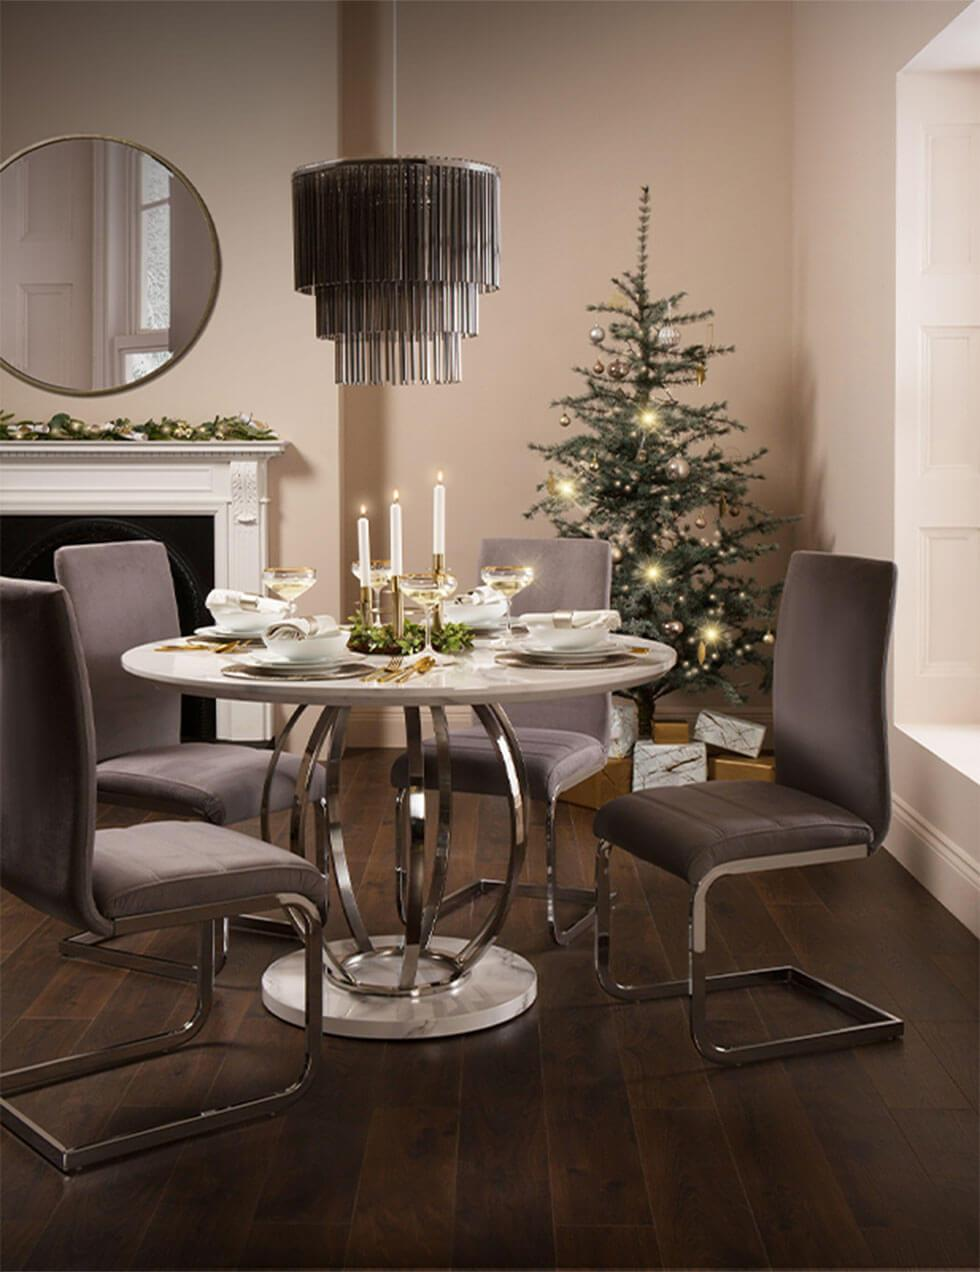 Chandelier above a white marble dining table in a glamorous Christmas setting.